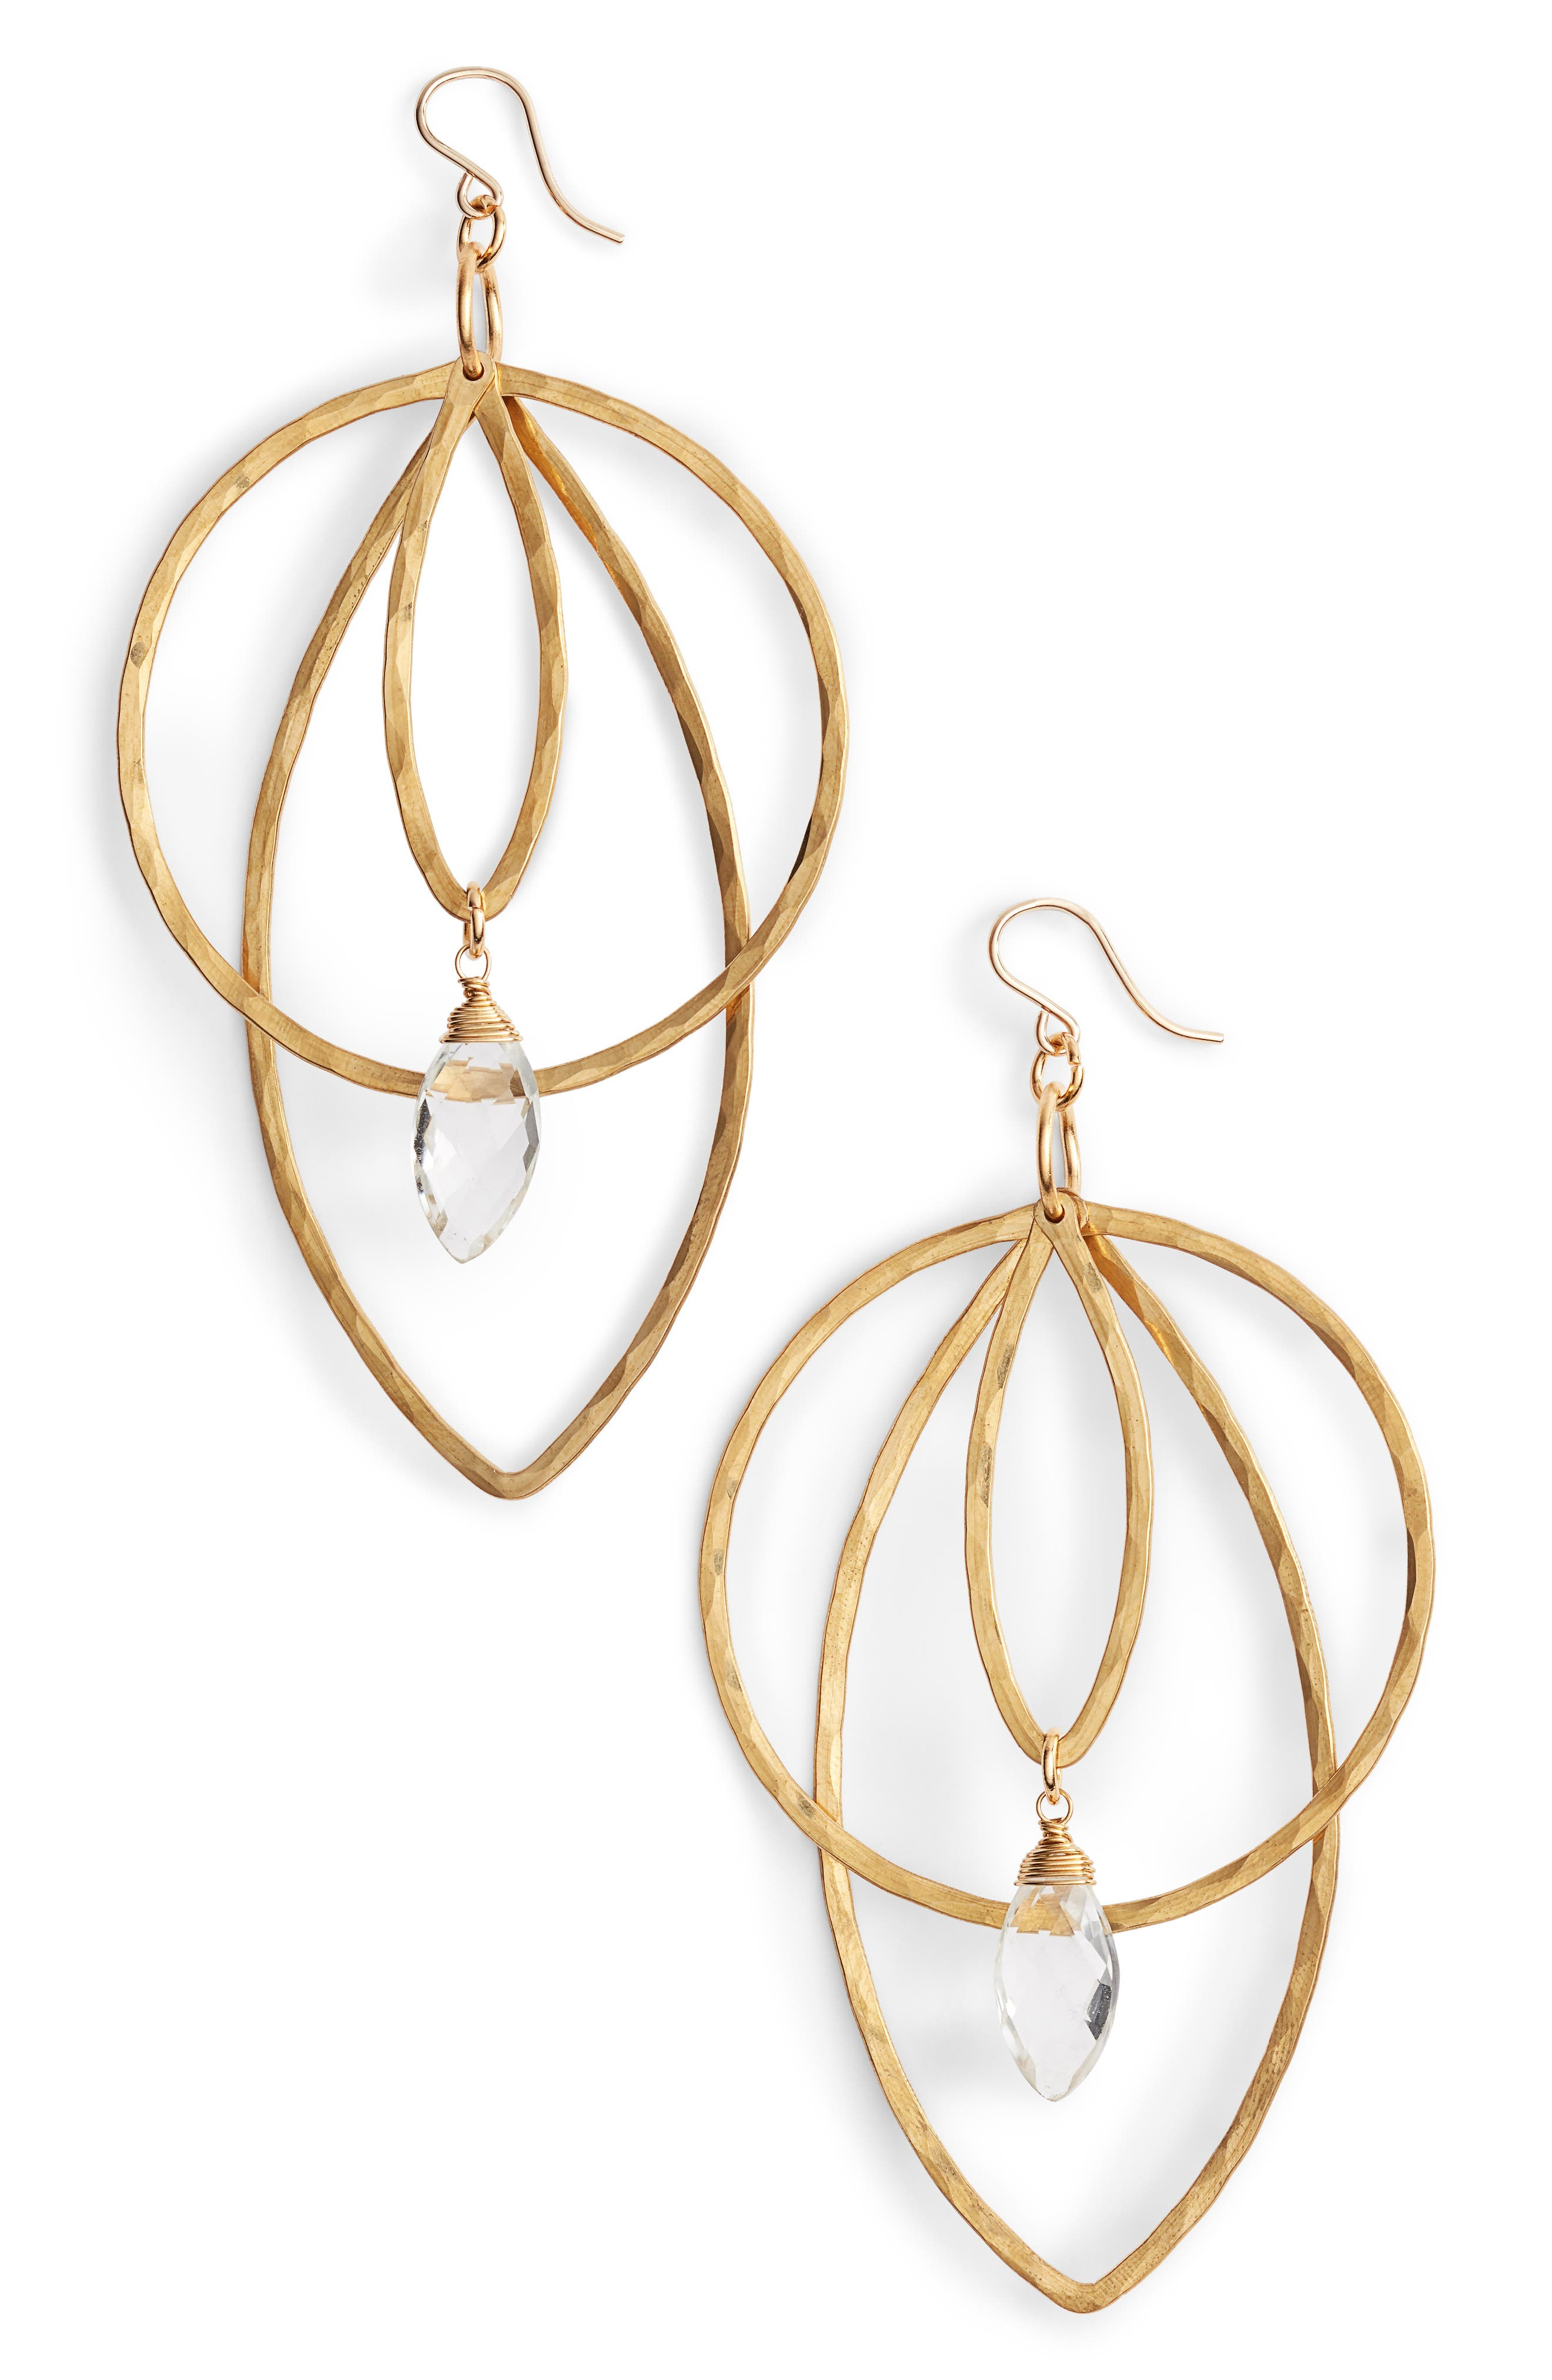 Superstar Soul Statement Earrings,                         Main,                         color, Gold- Crystal